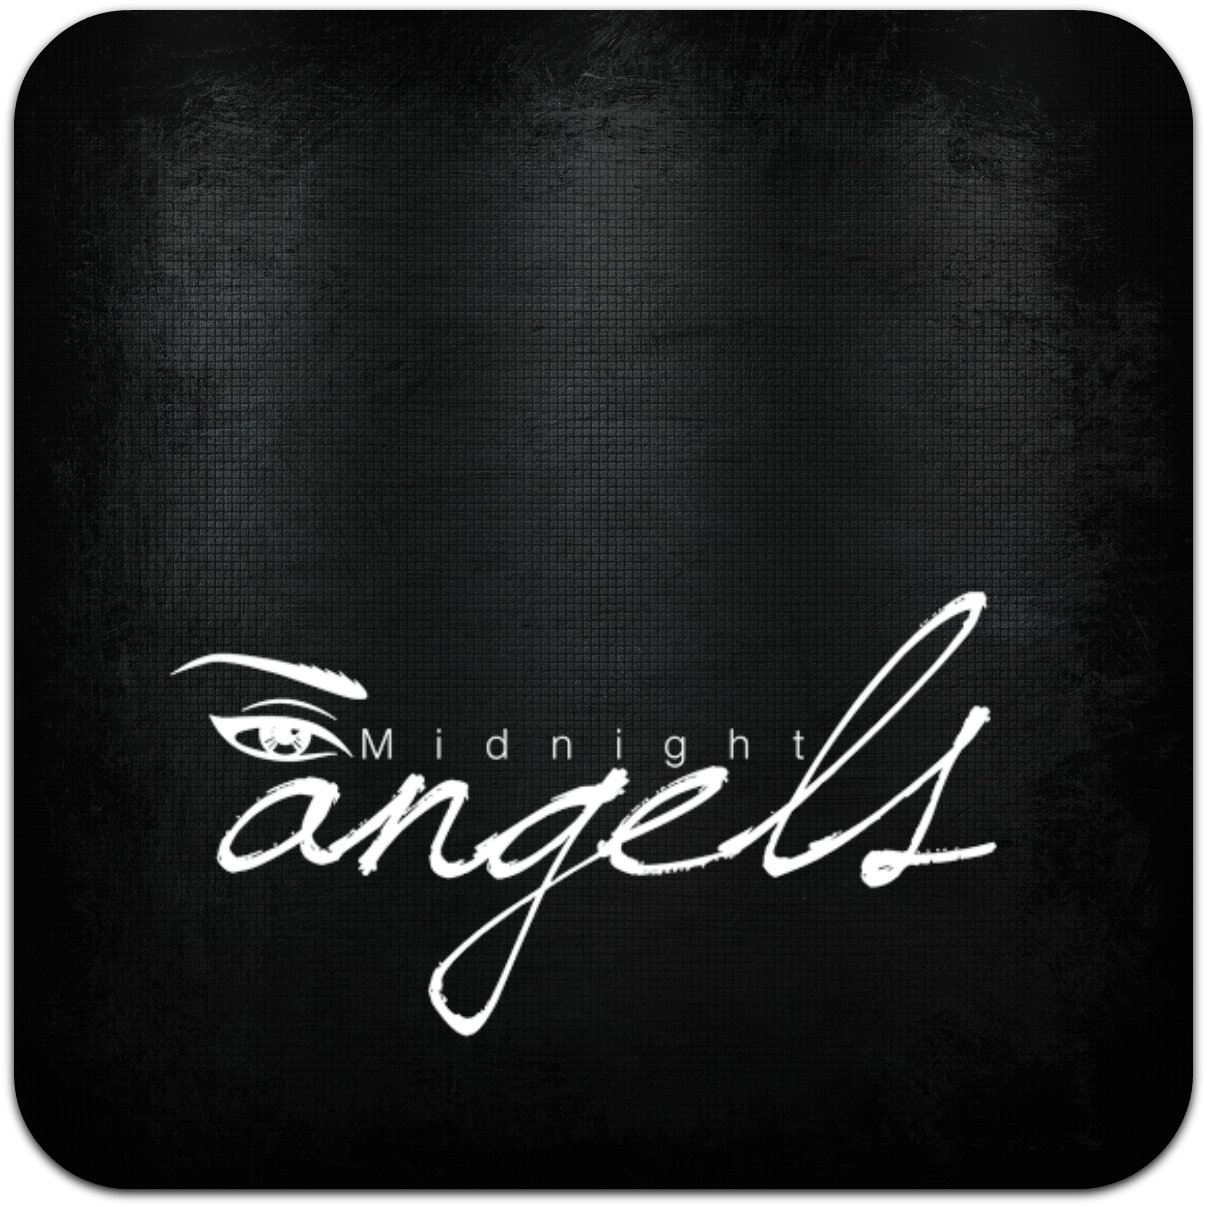 Daytona Dream Center - Midnight Angels